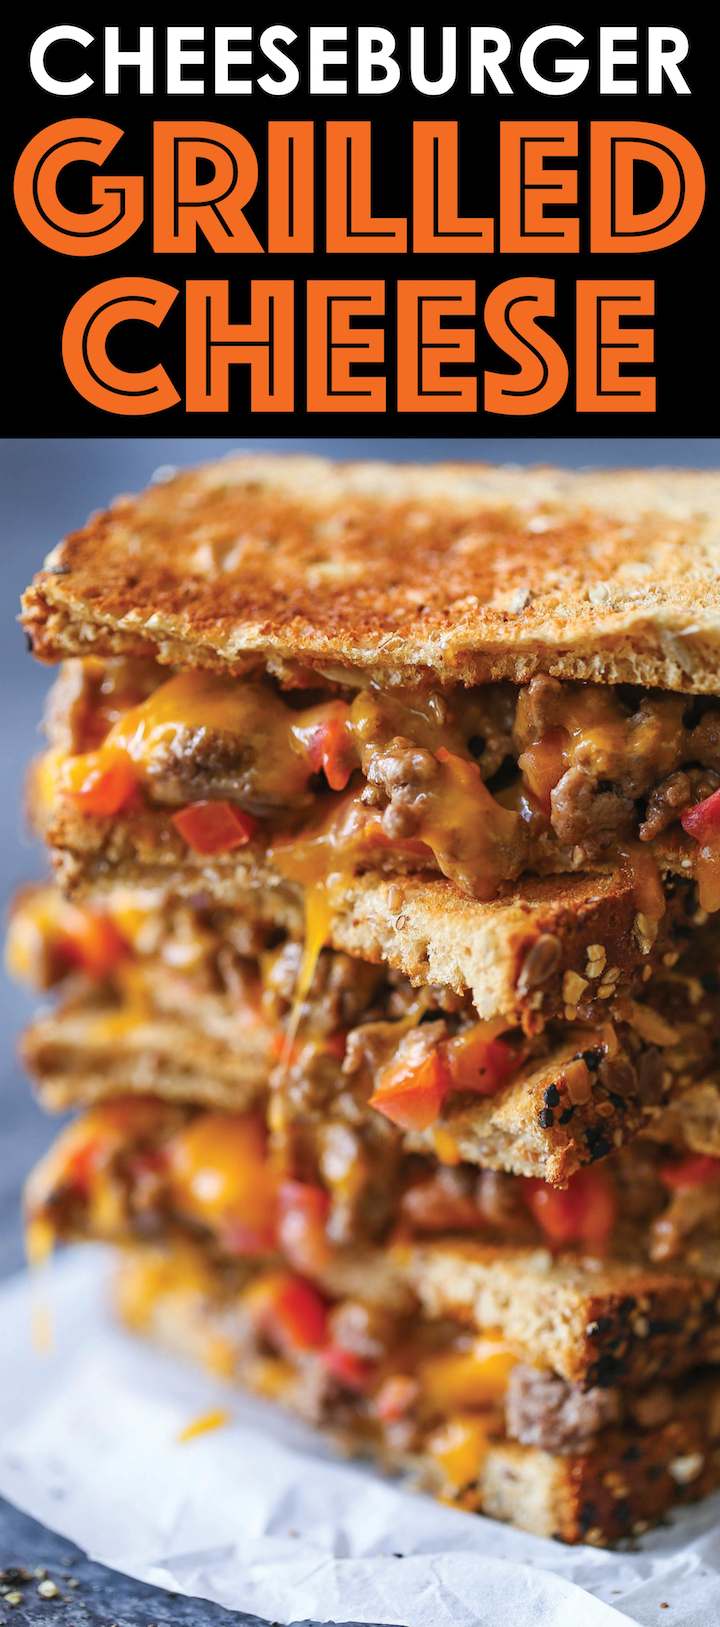 Cheeseburger Grilled Cheese - This will basically be the best grilled cheese of your life - stacked with cheesy, meaty goodness! Perfect for a quick dinner!